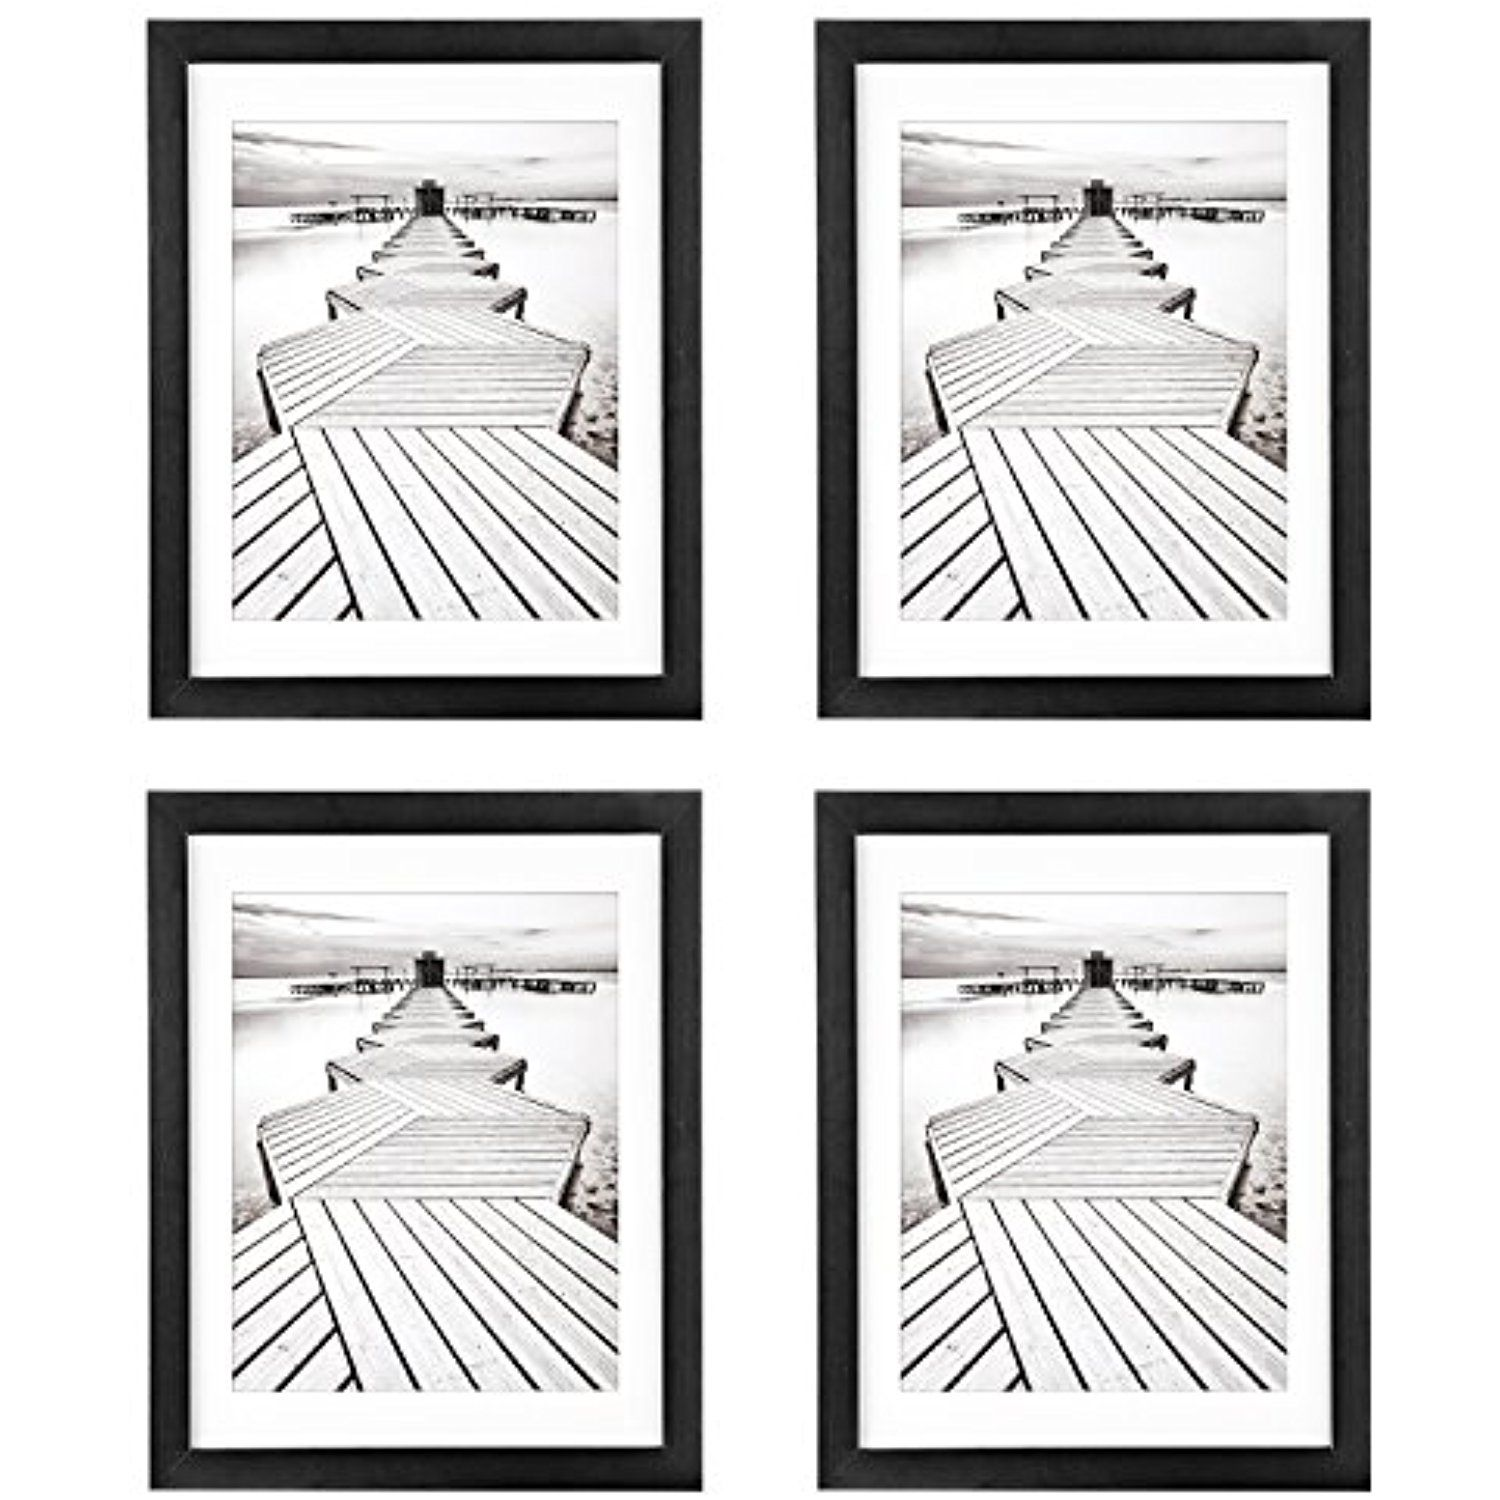 11x14 Black Picture Frames 4 Pack Unitystar Wood Photo Frames Sized 11x14 Inch No Mat 8x10 With Mat Soli Wood Photo Frame Black Picture Frames Picture Frames